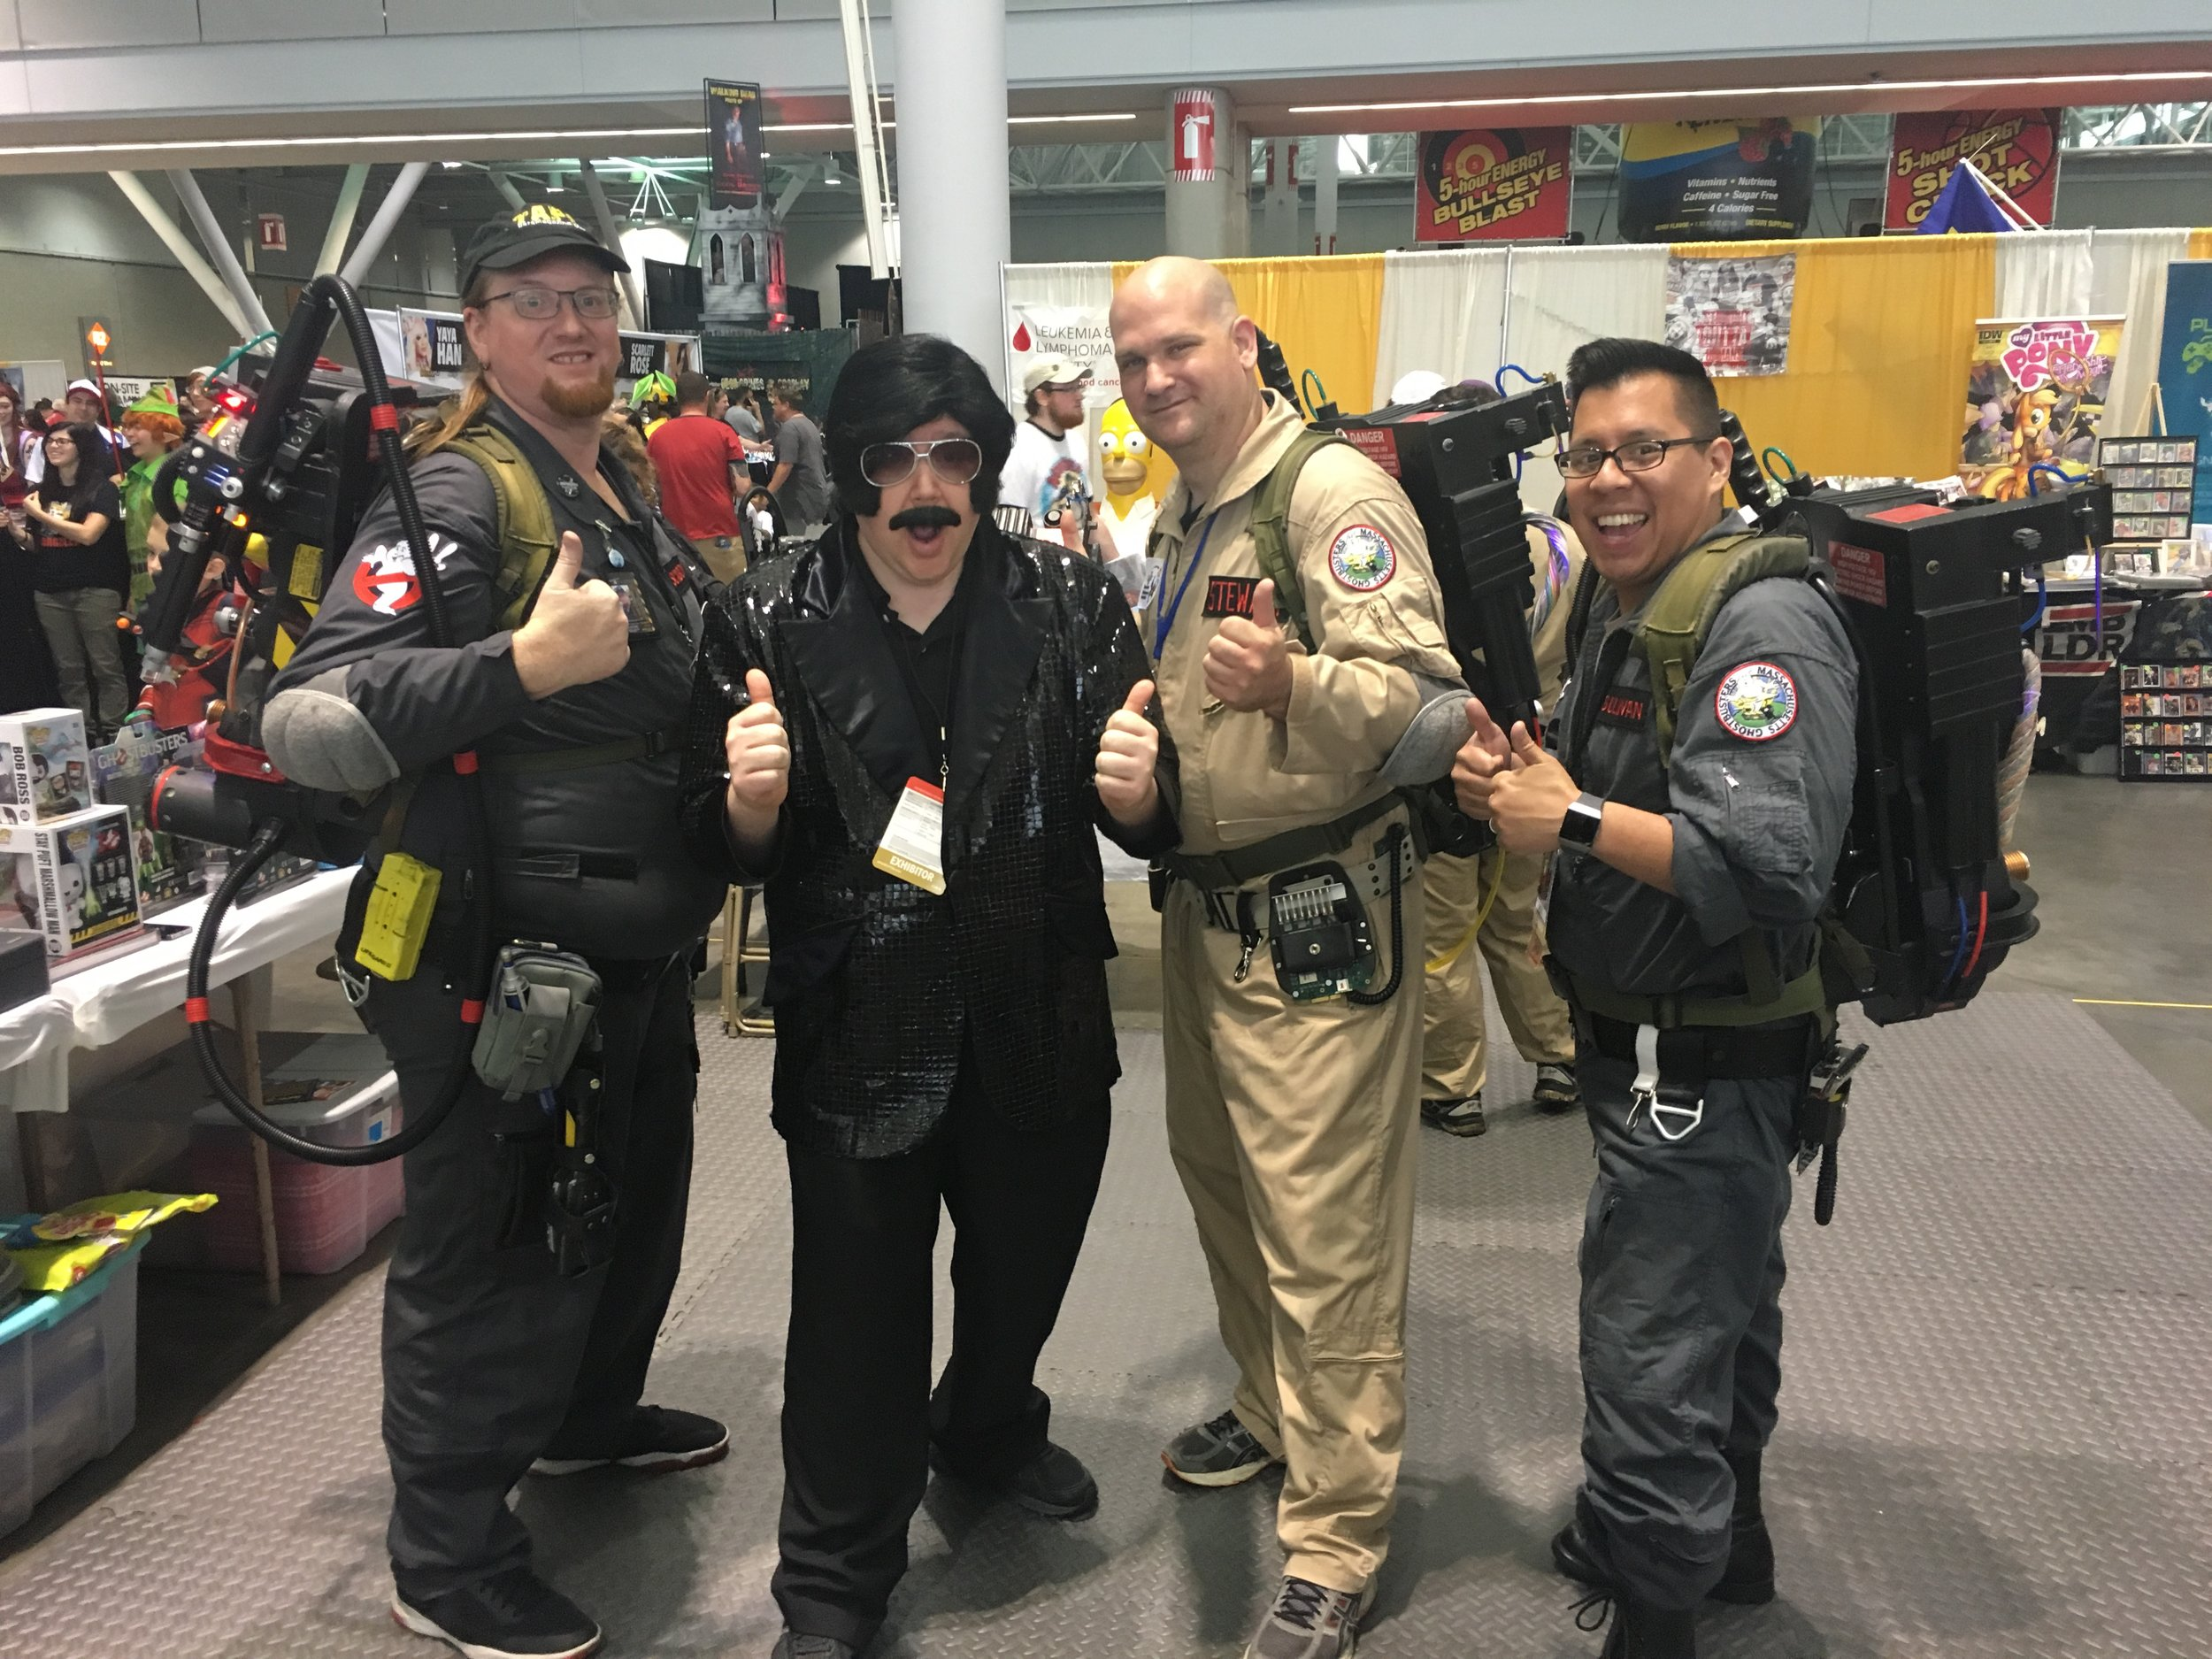 New England Ghostbusters